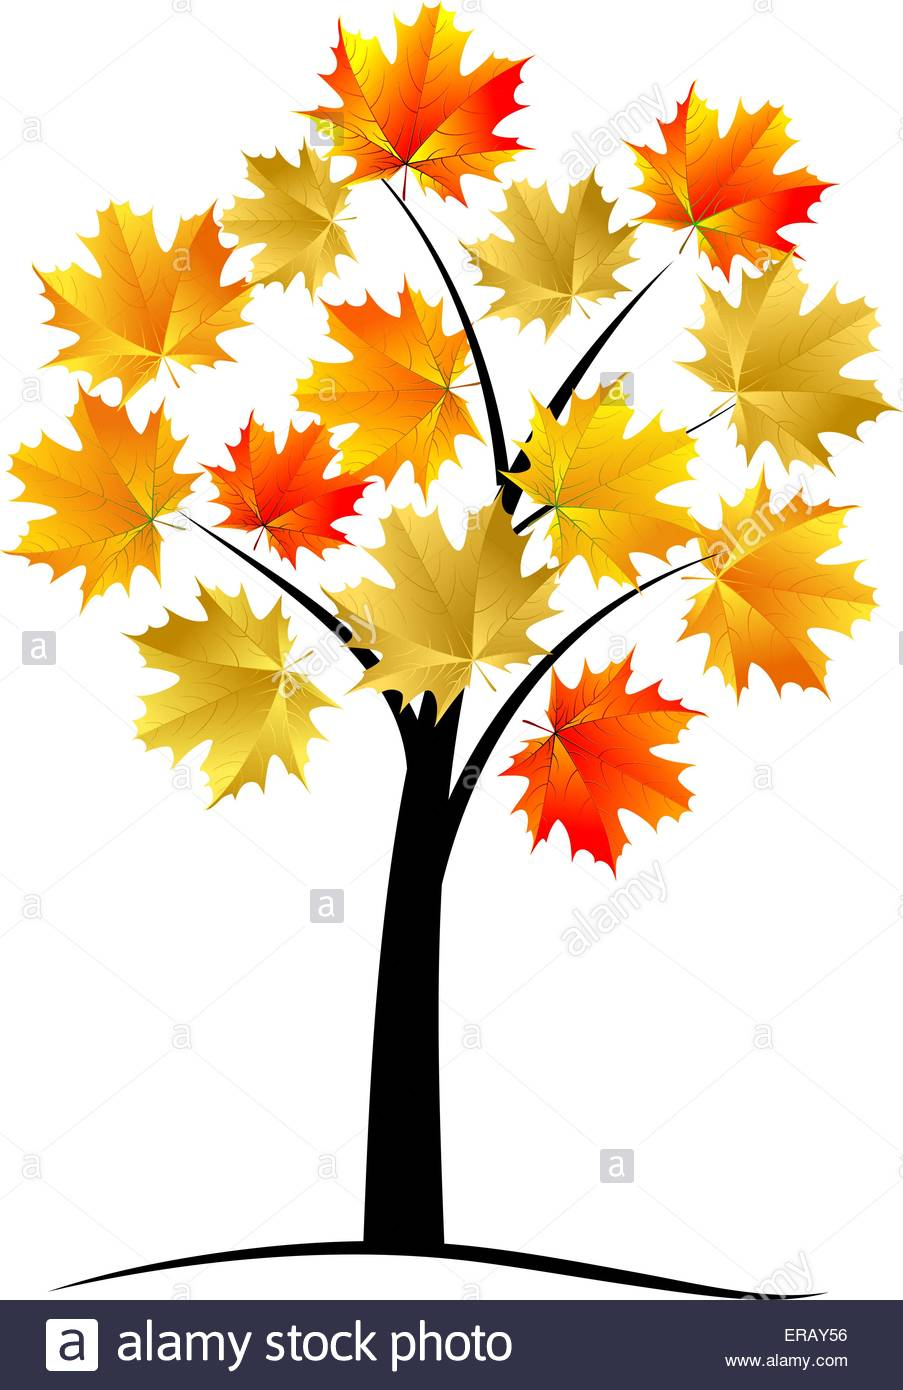 903x1390 Sycamore Tree Stock Vector Images